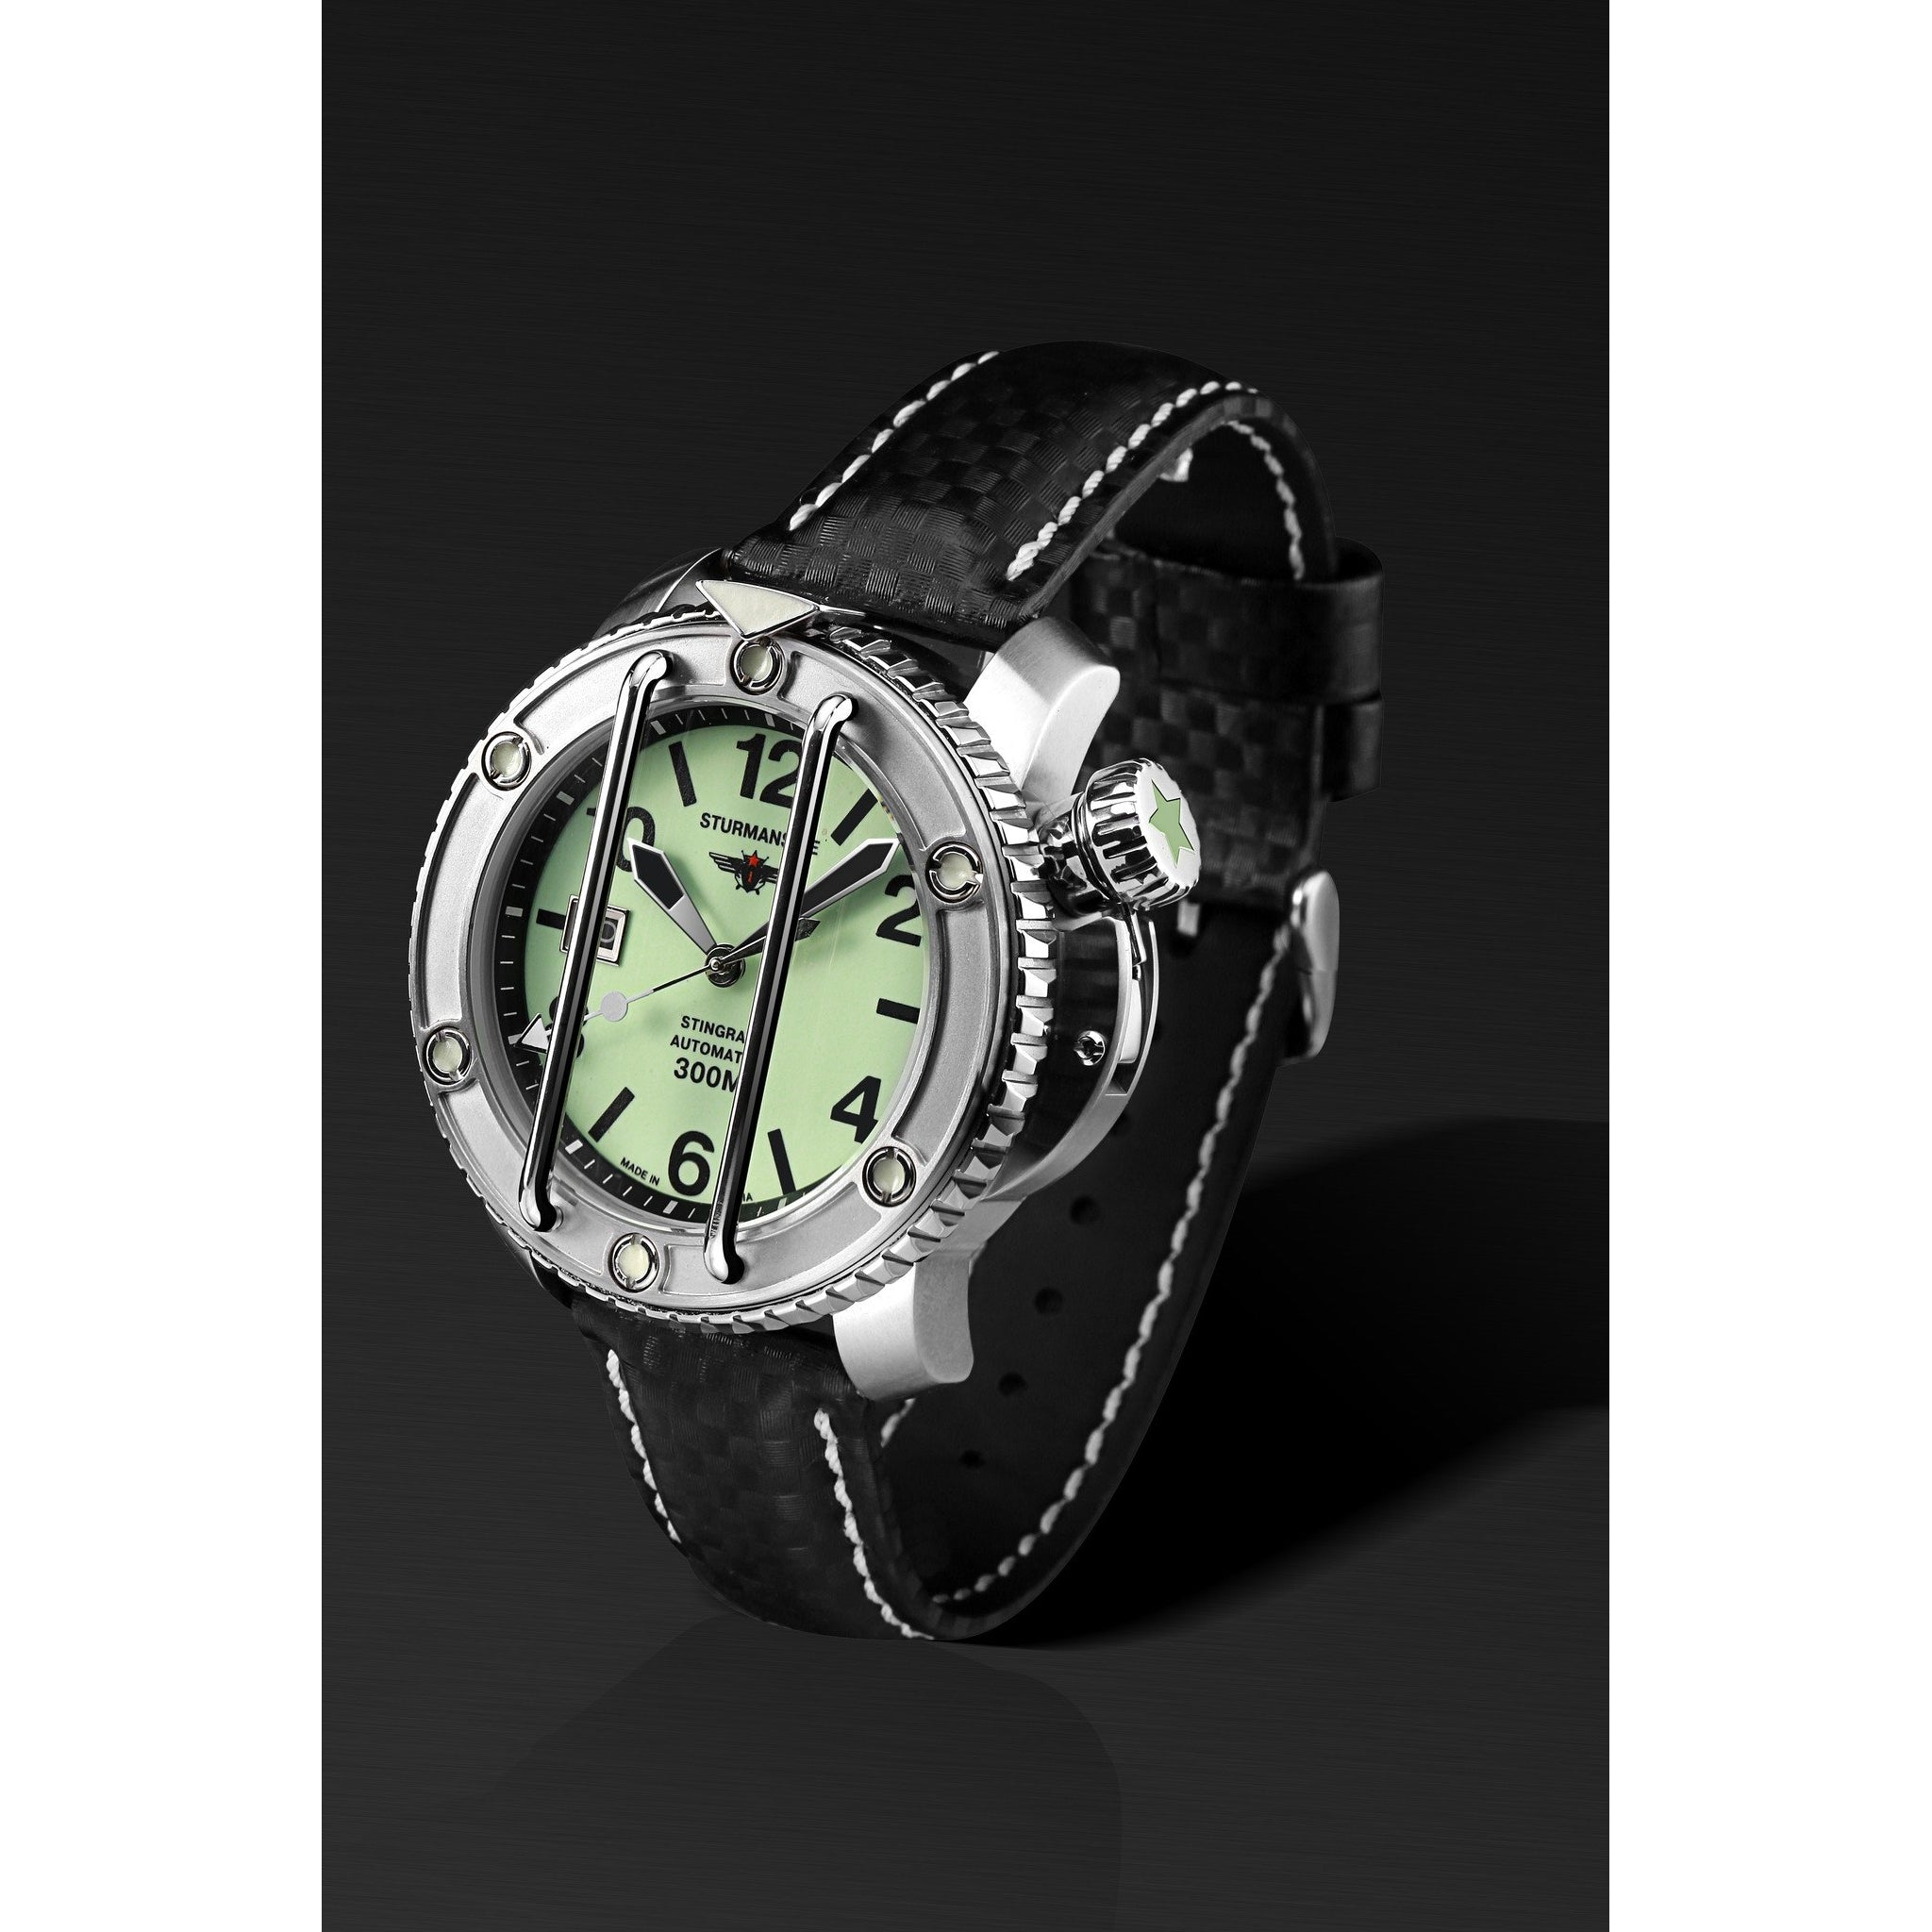 Sturmanskie Ocean Stingray Automatic Watch NH35/1825898 - Watchfinder General - UK suppliers of Russian Vostok Parnis Watches MWC G10  - 2